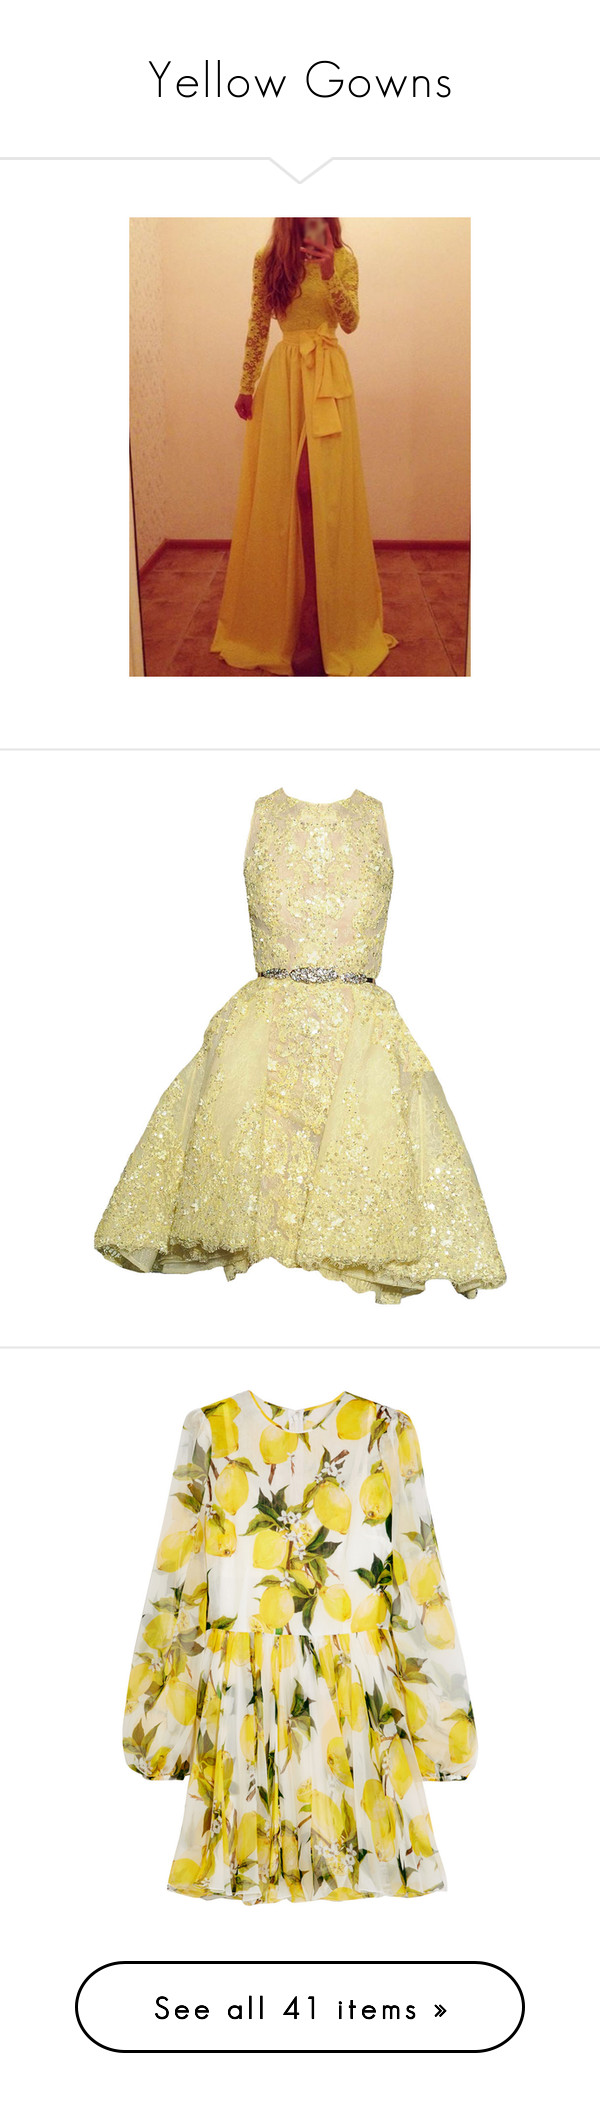 Yellow dress long sleeve  Yellow Gowns